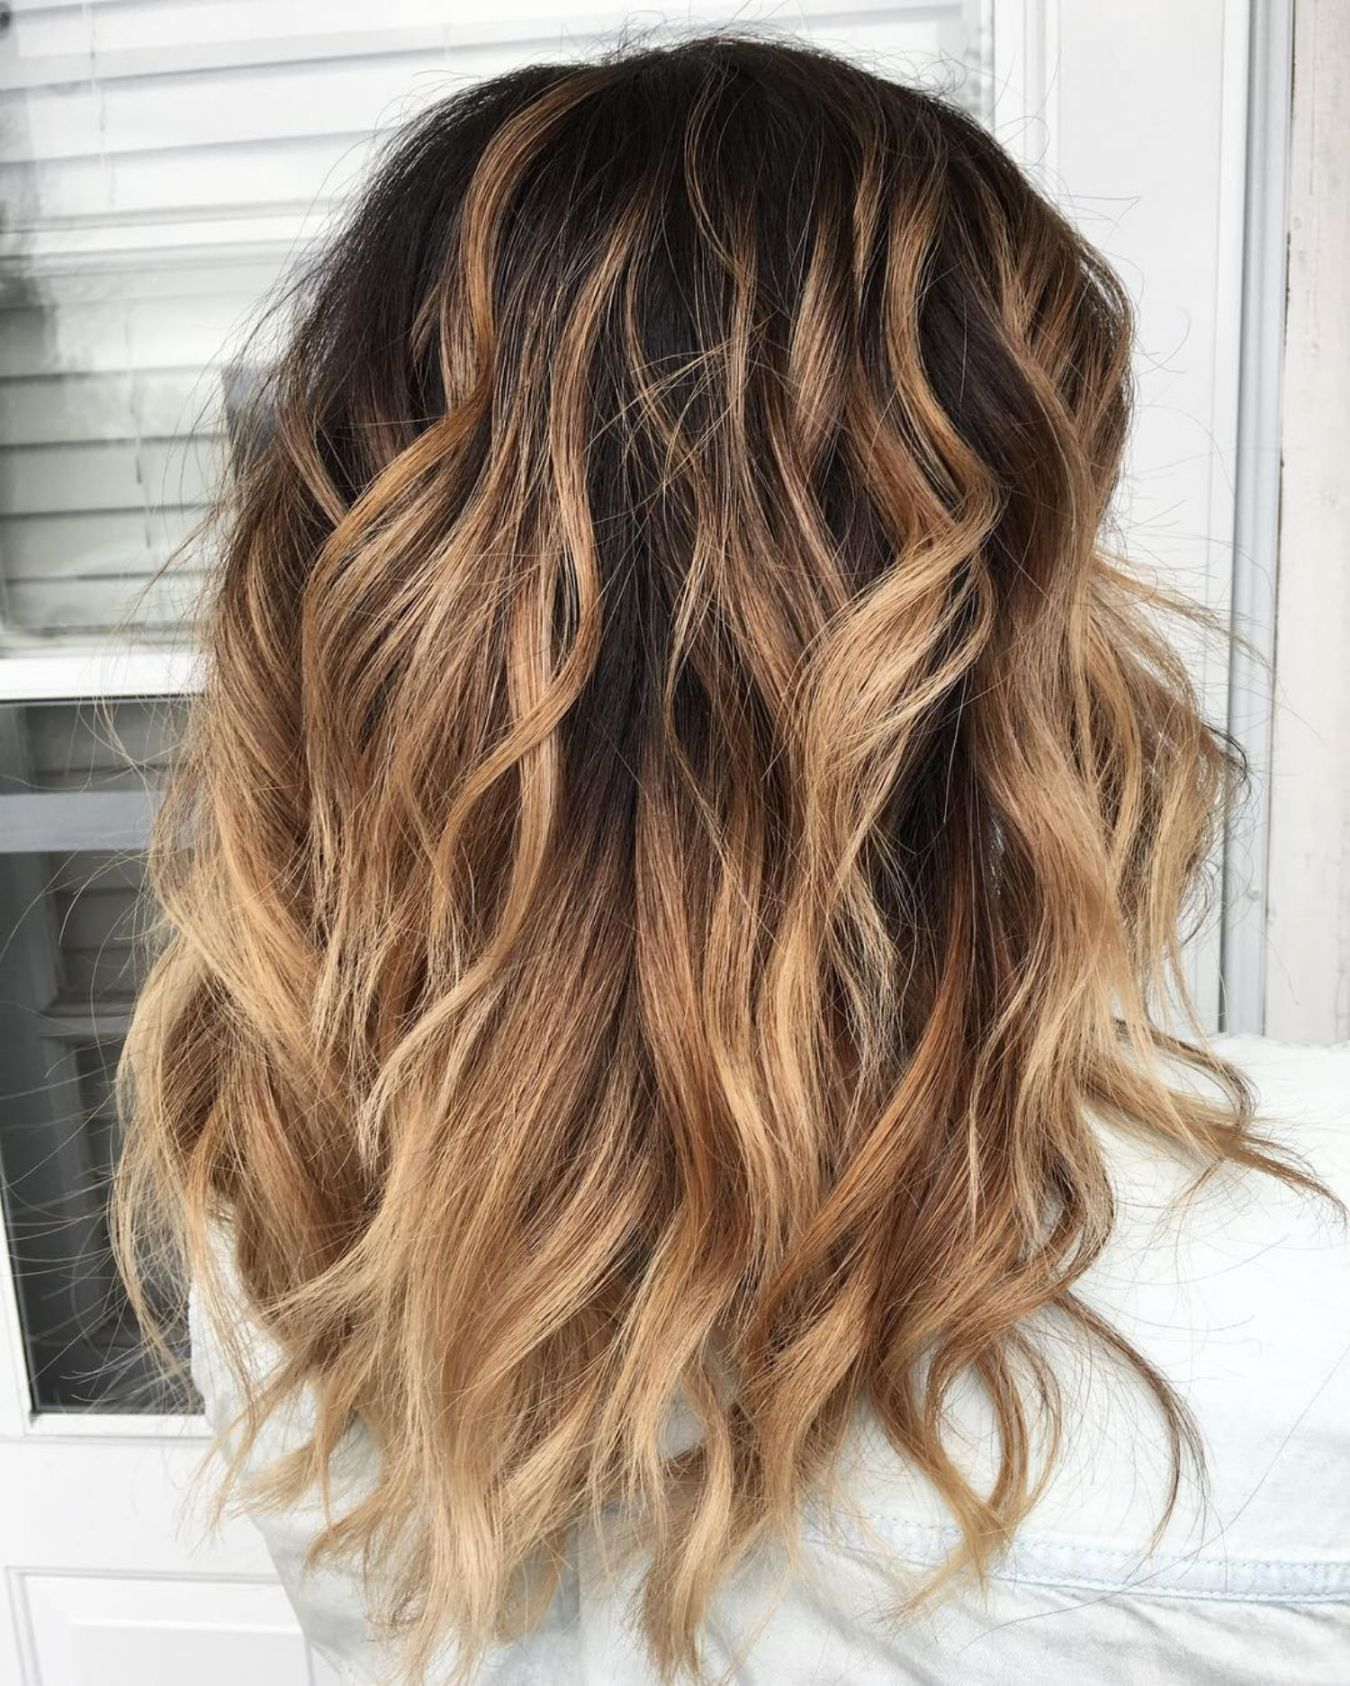 60 Most Magnetizing Hairstyles For Thick Wavy Hair Thick Wavy Hair Wavy Hairstyles Medium Wavy Haircuts